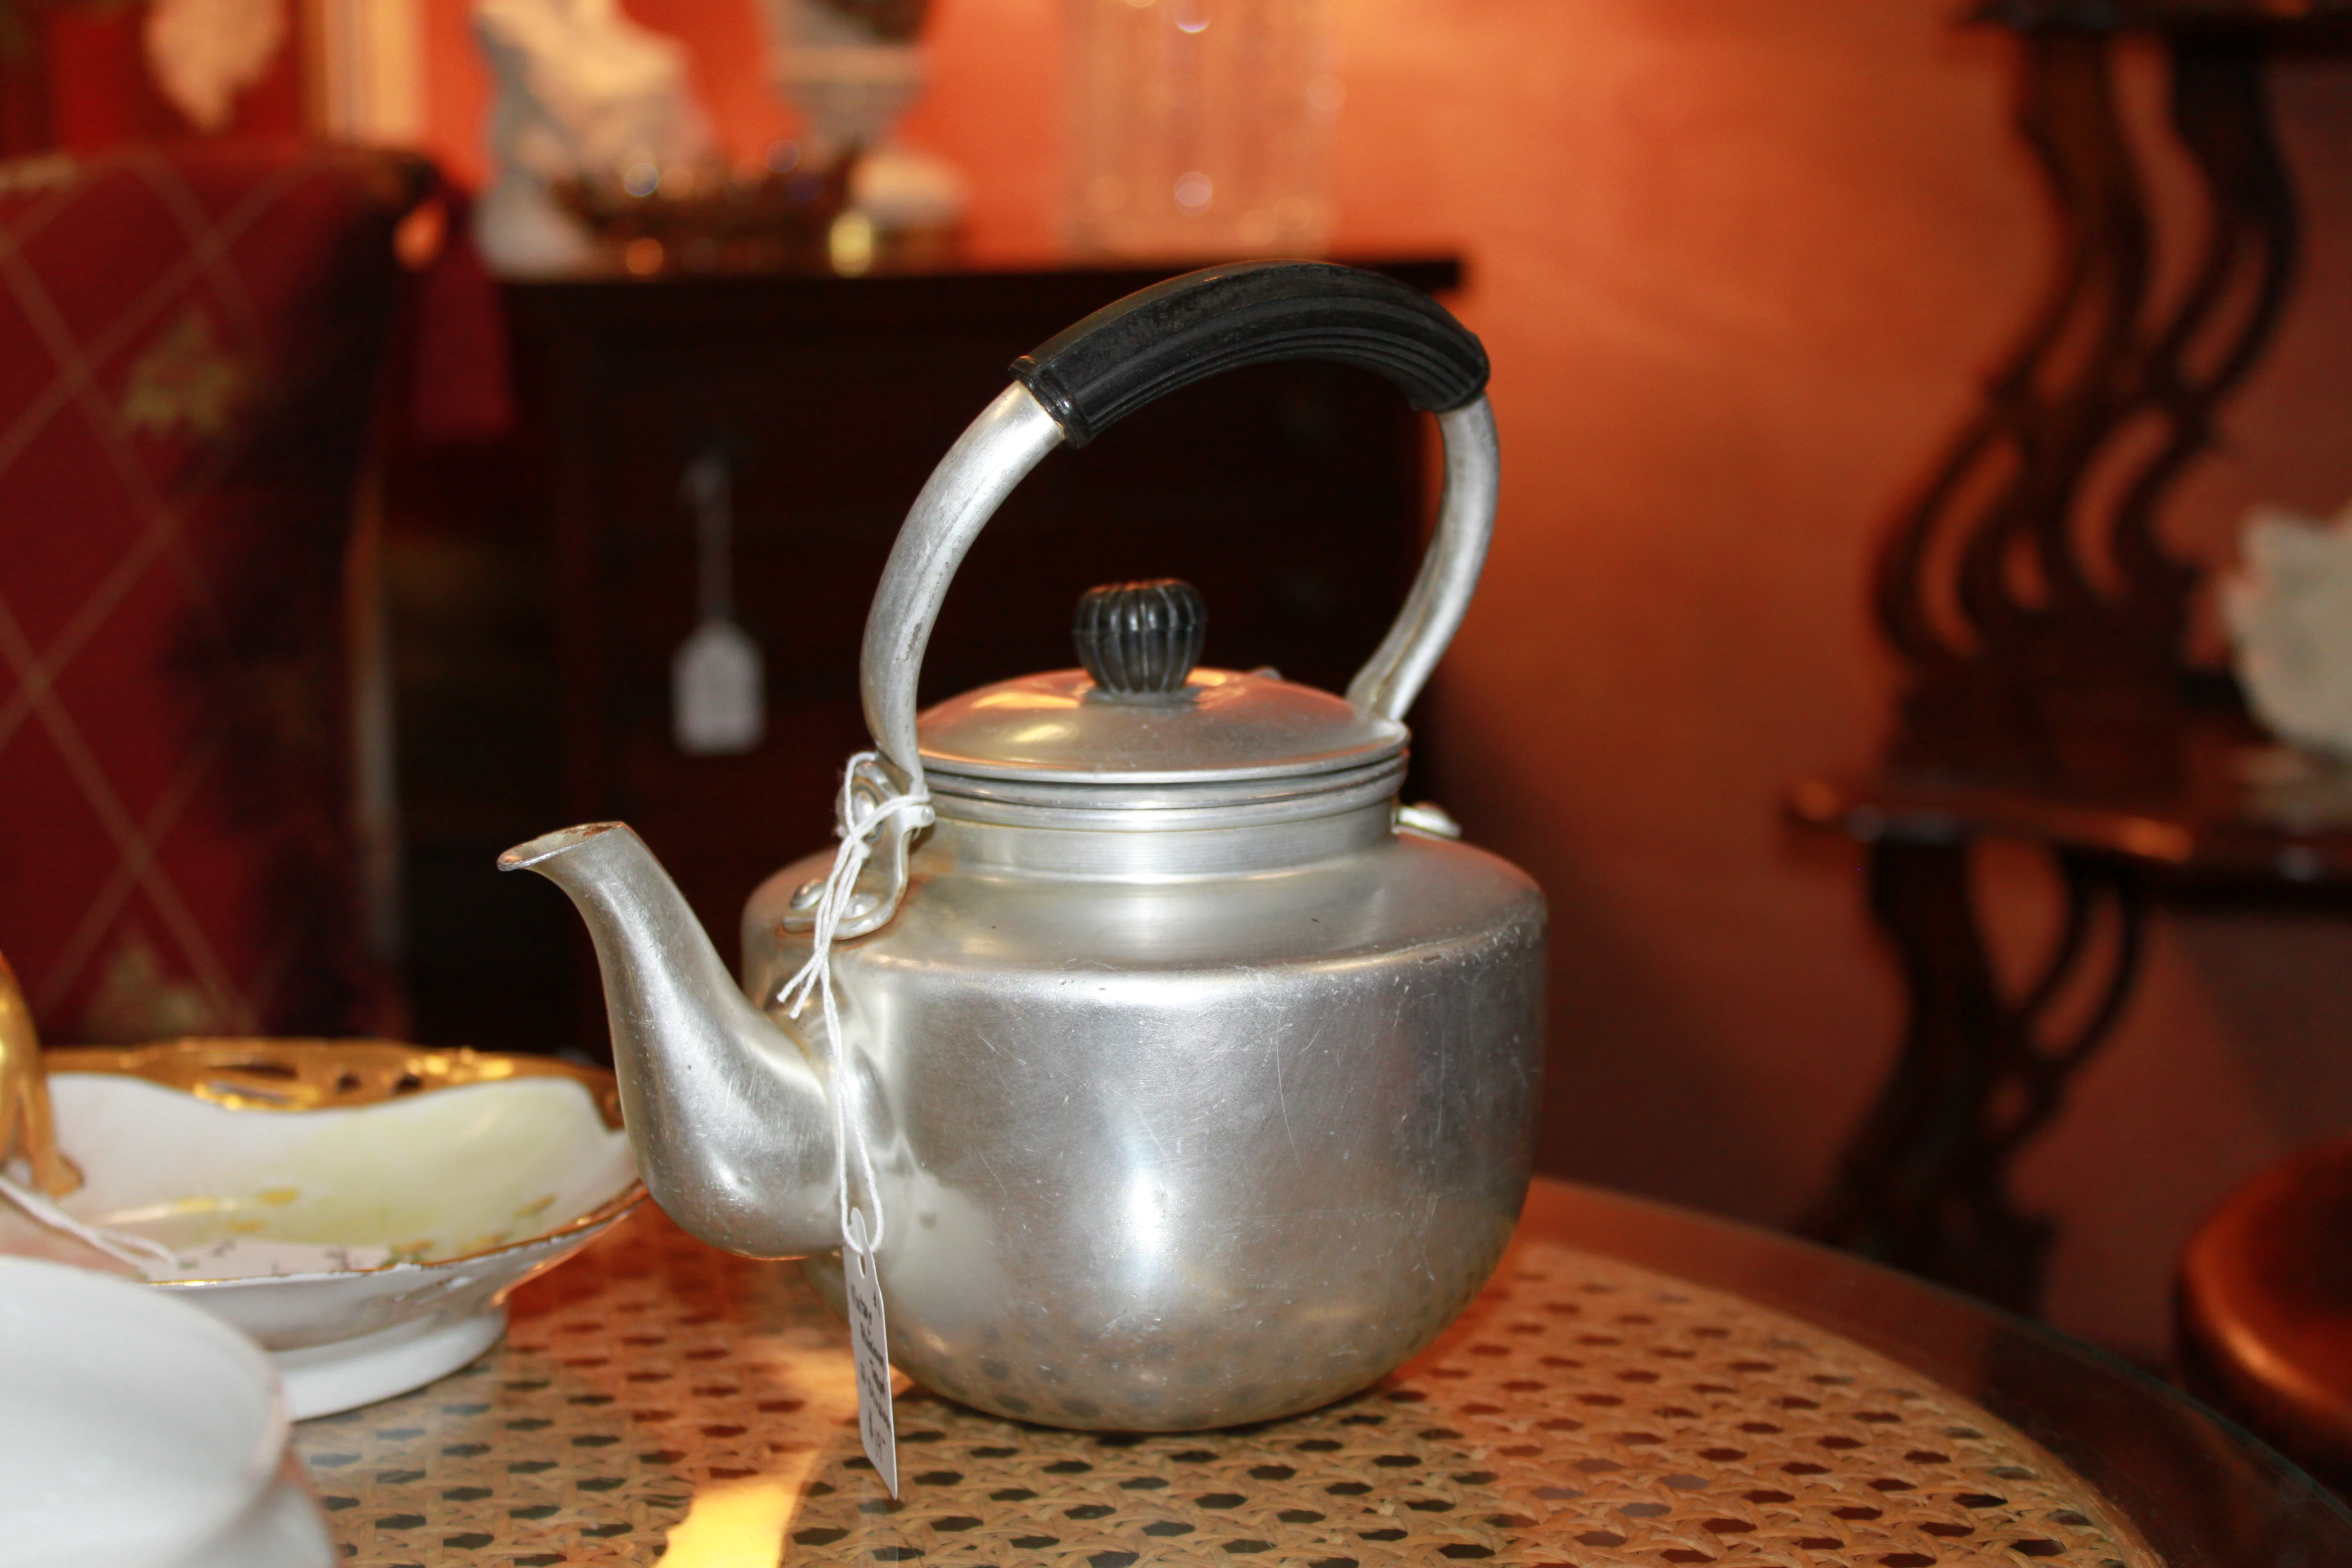 Vintage Aluminum Teapot with Strainer